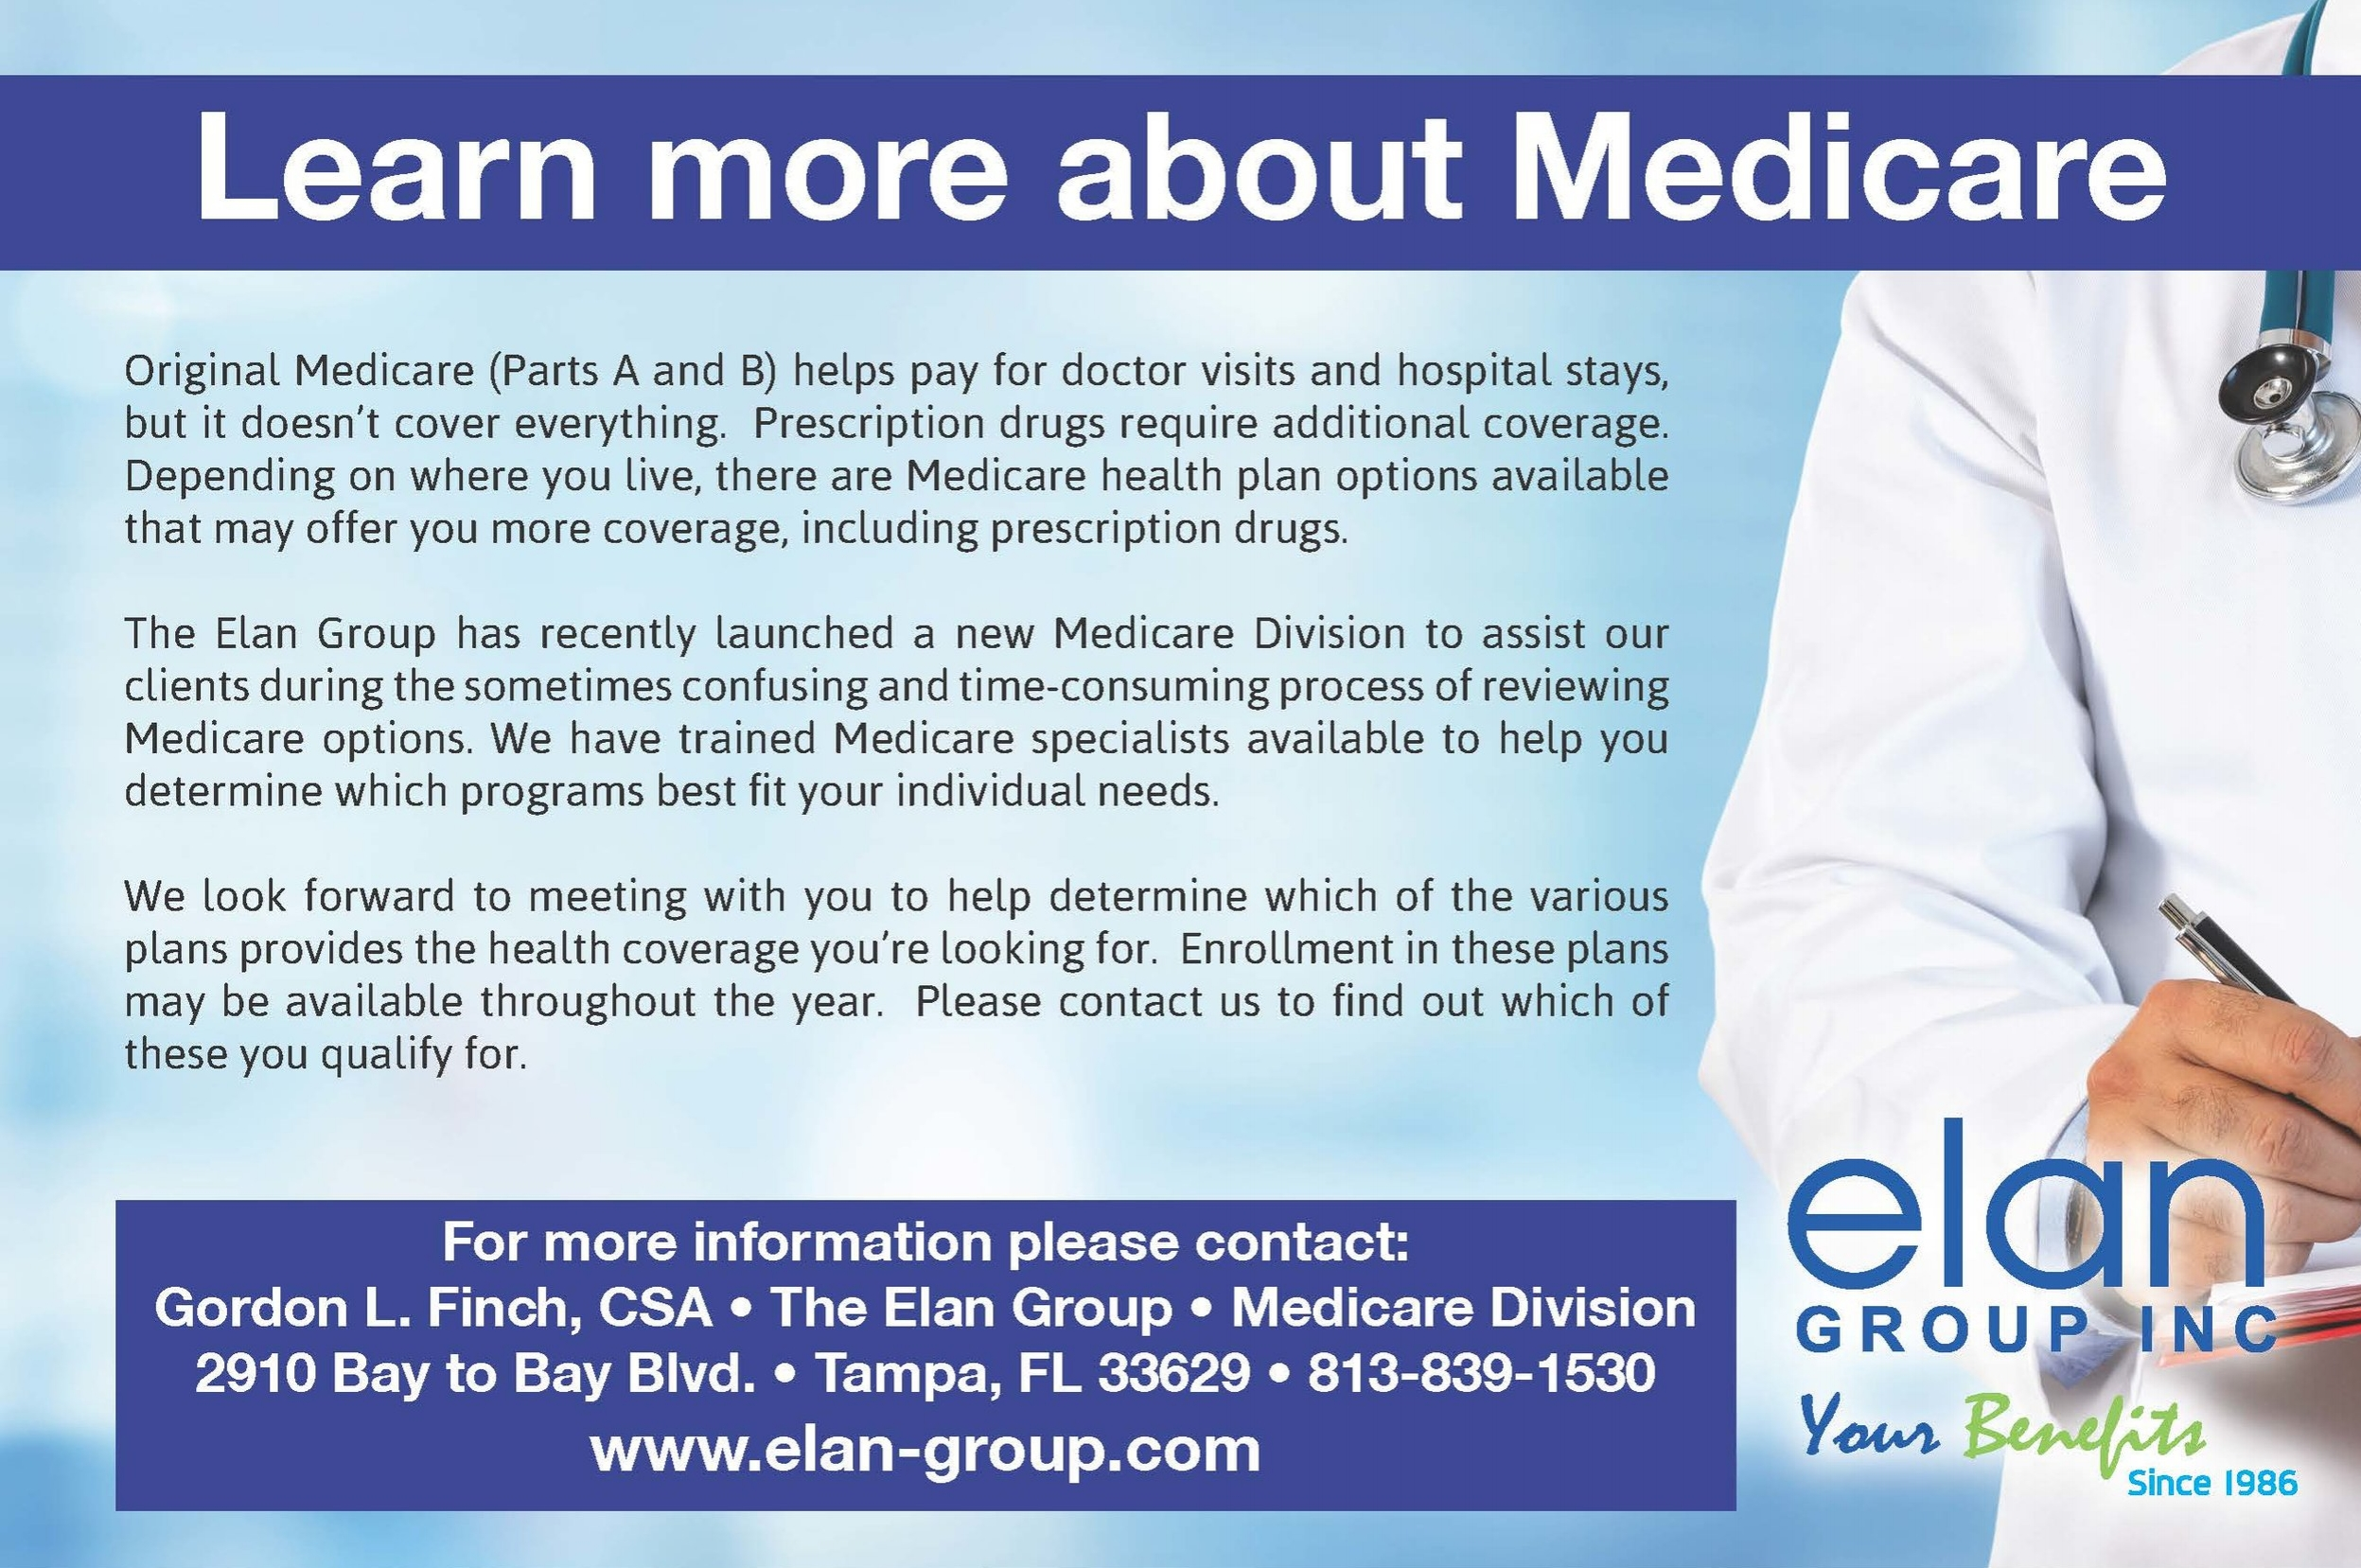 Medicare Services \u2014 Elan Group Inc